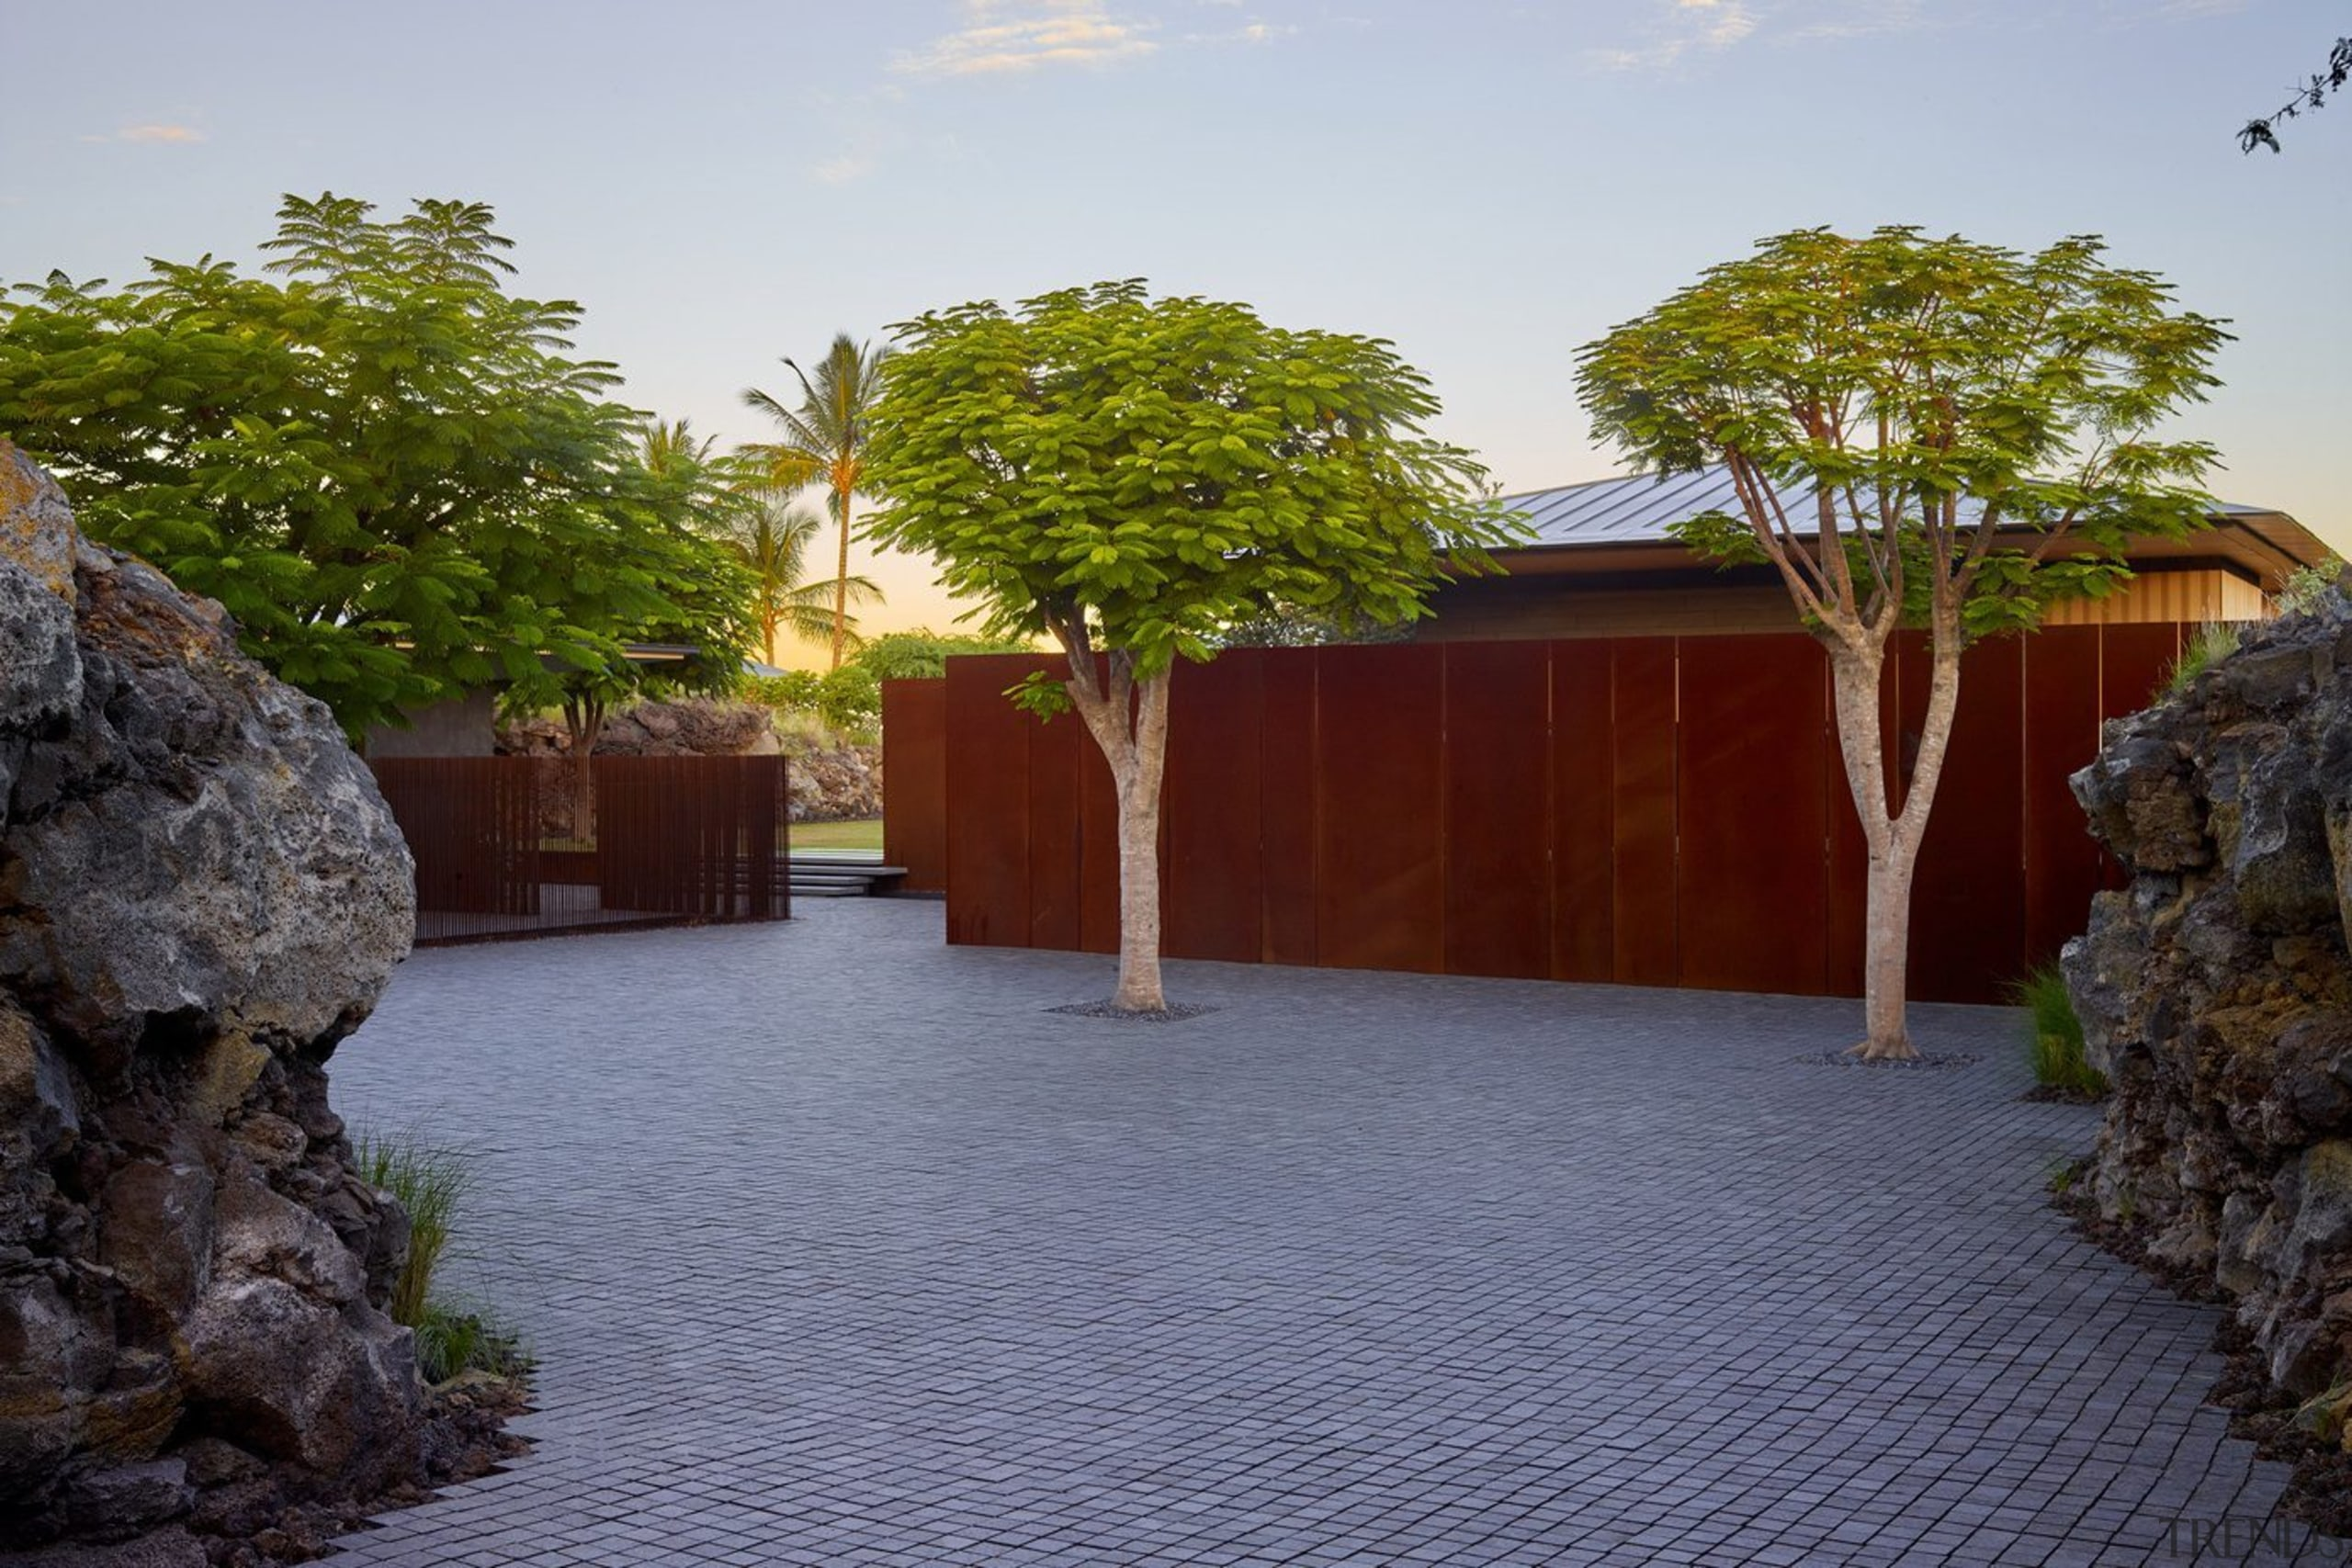 Sculptural and spacious, this landscape design draws on blue